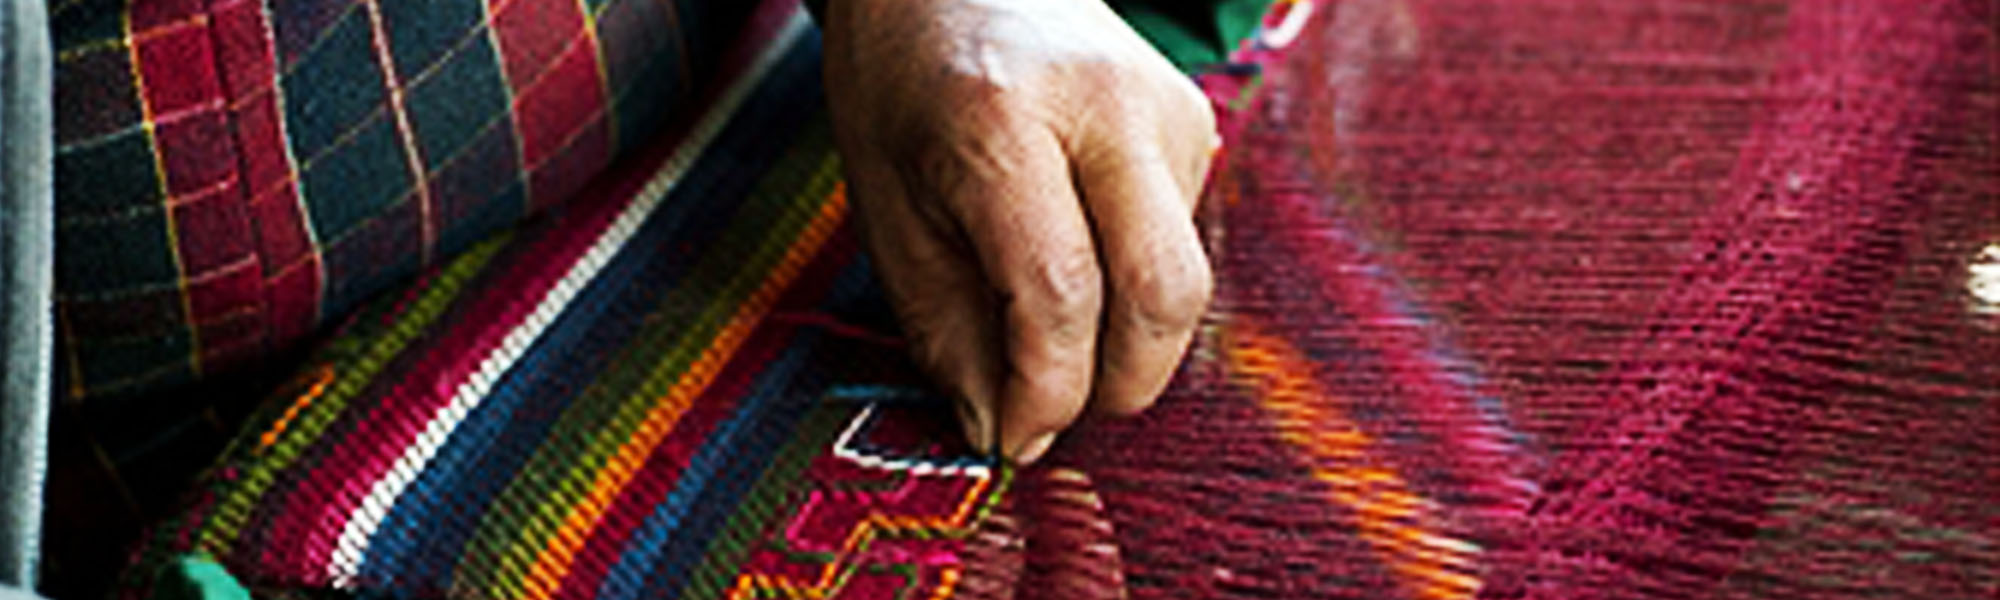 Bhutanese arts and crafts